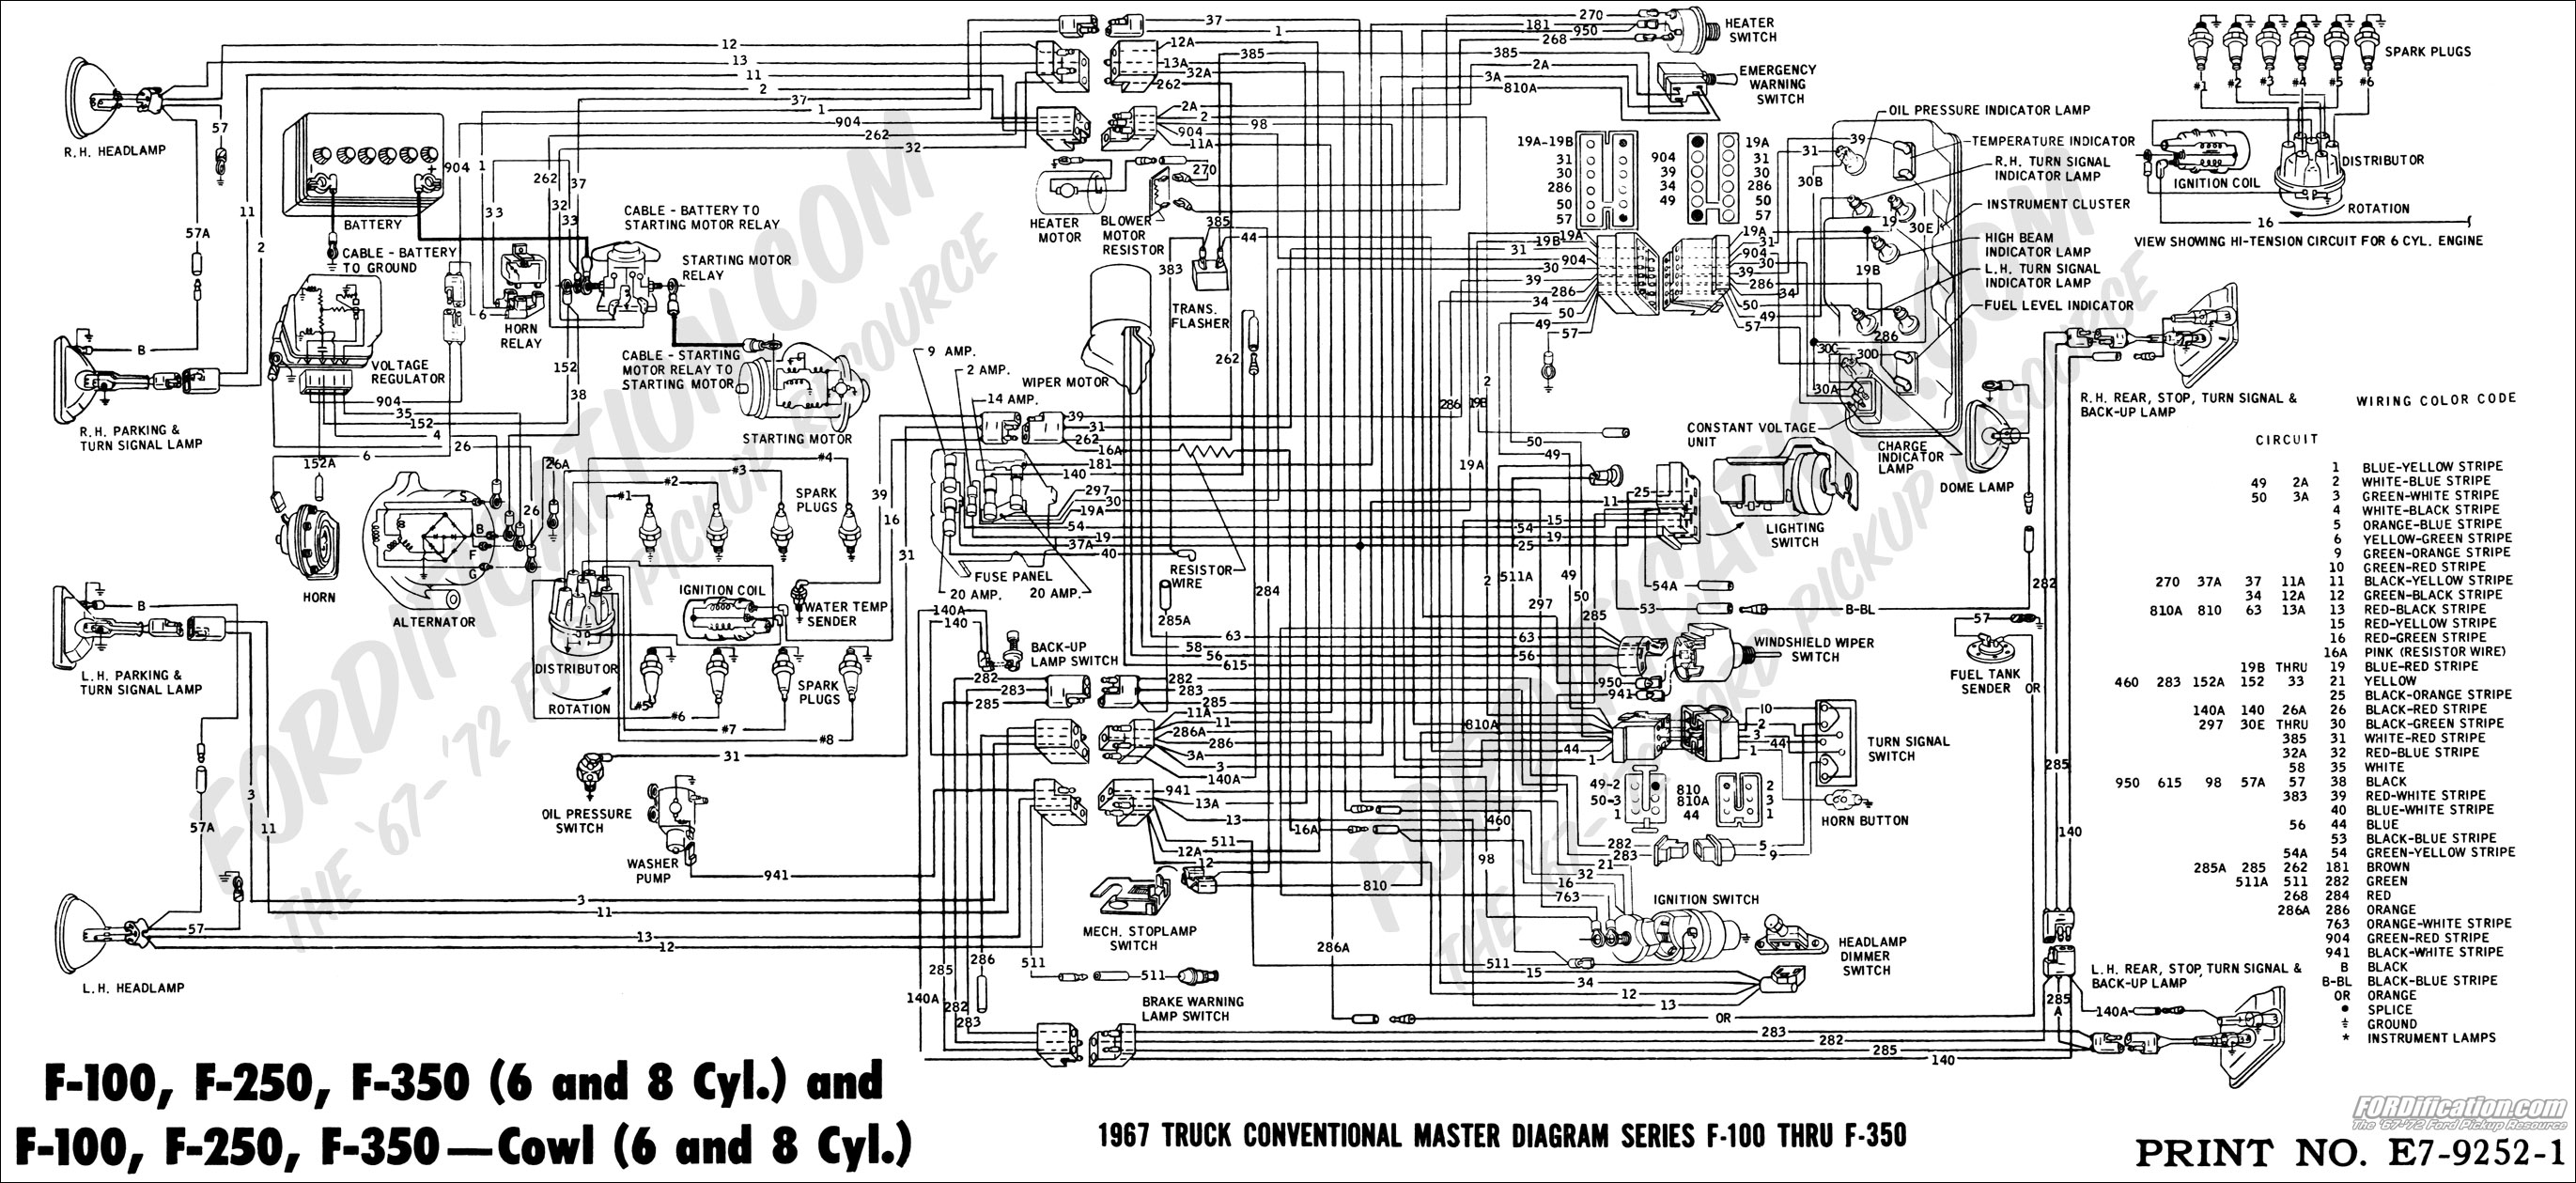 67masterdiagram ford truck technical drawings and schematics section h wiring 1999 ford ranger ignition wiring diagram at gsmportal.co